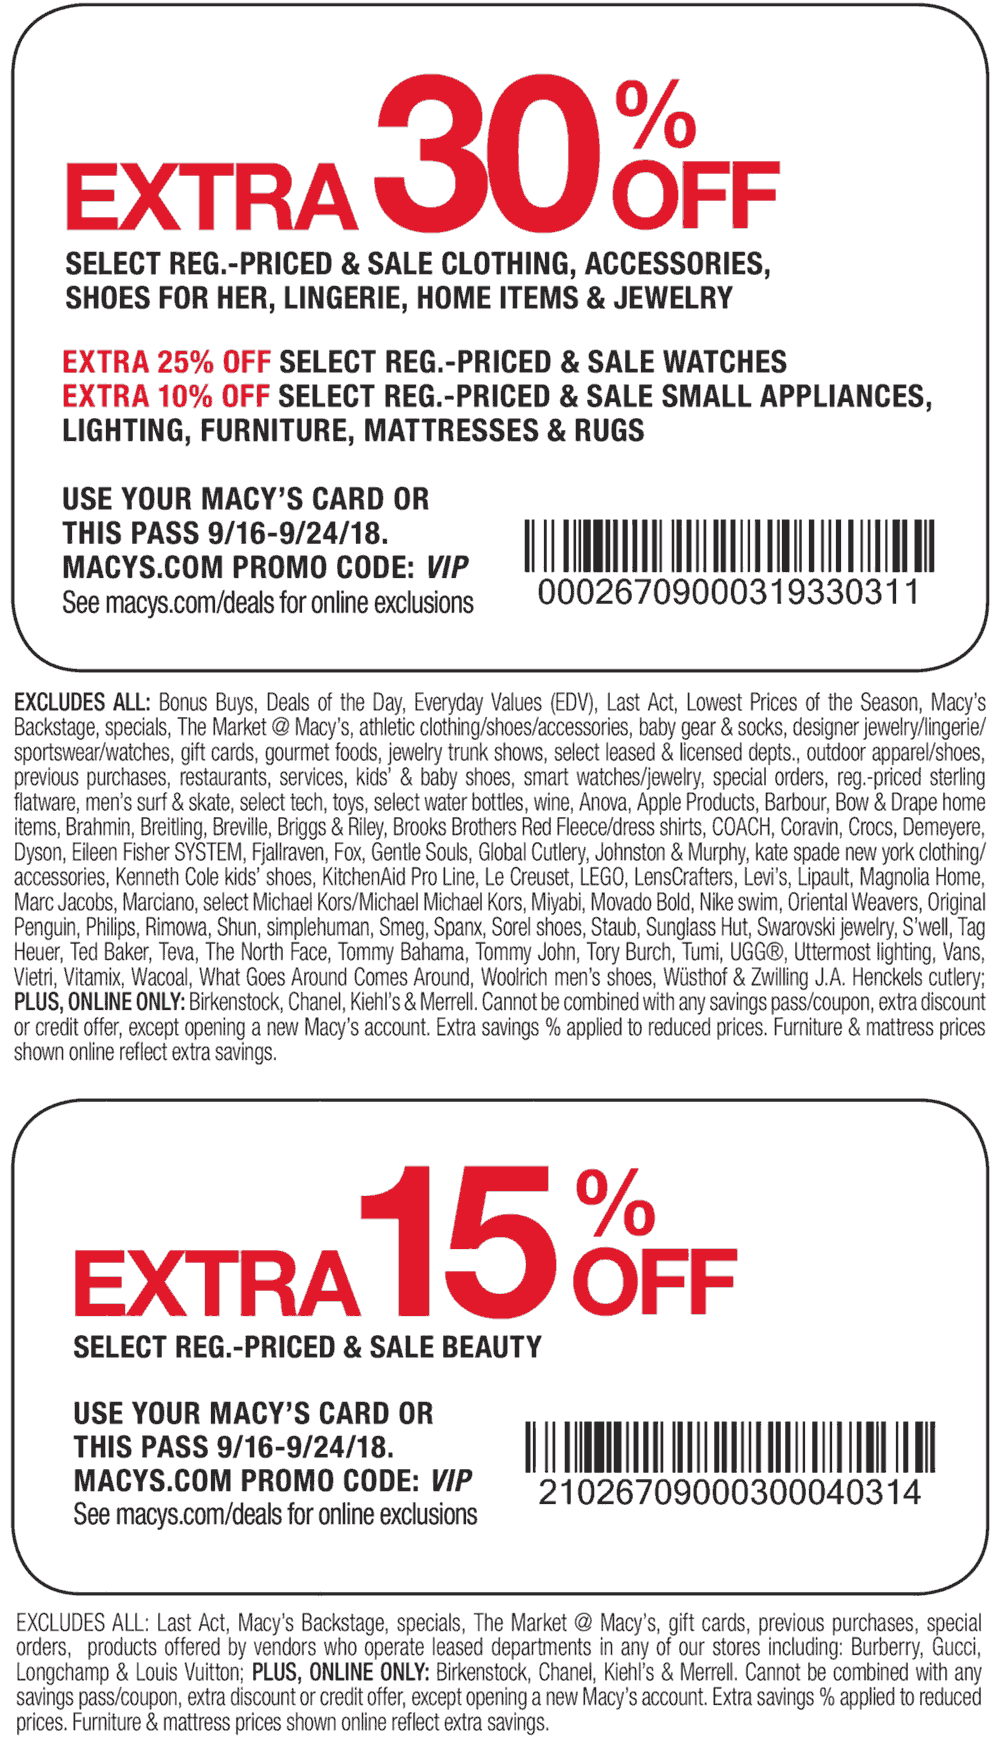 Macys Coupon May 2019 Extra 30% off at Macys, or online via promo code VIP